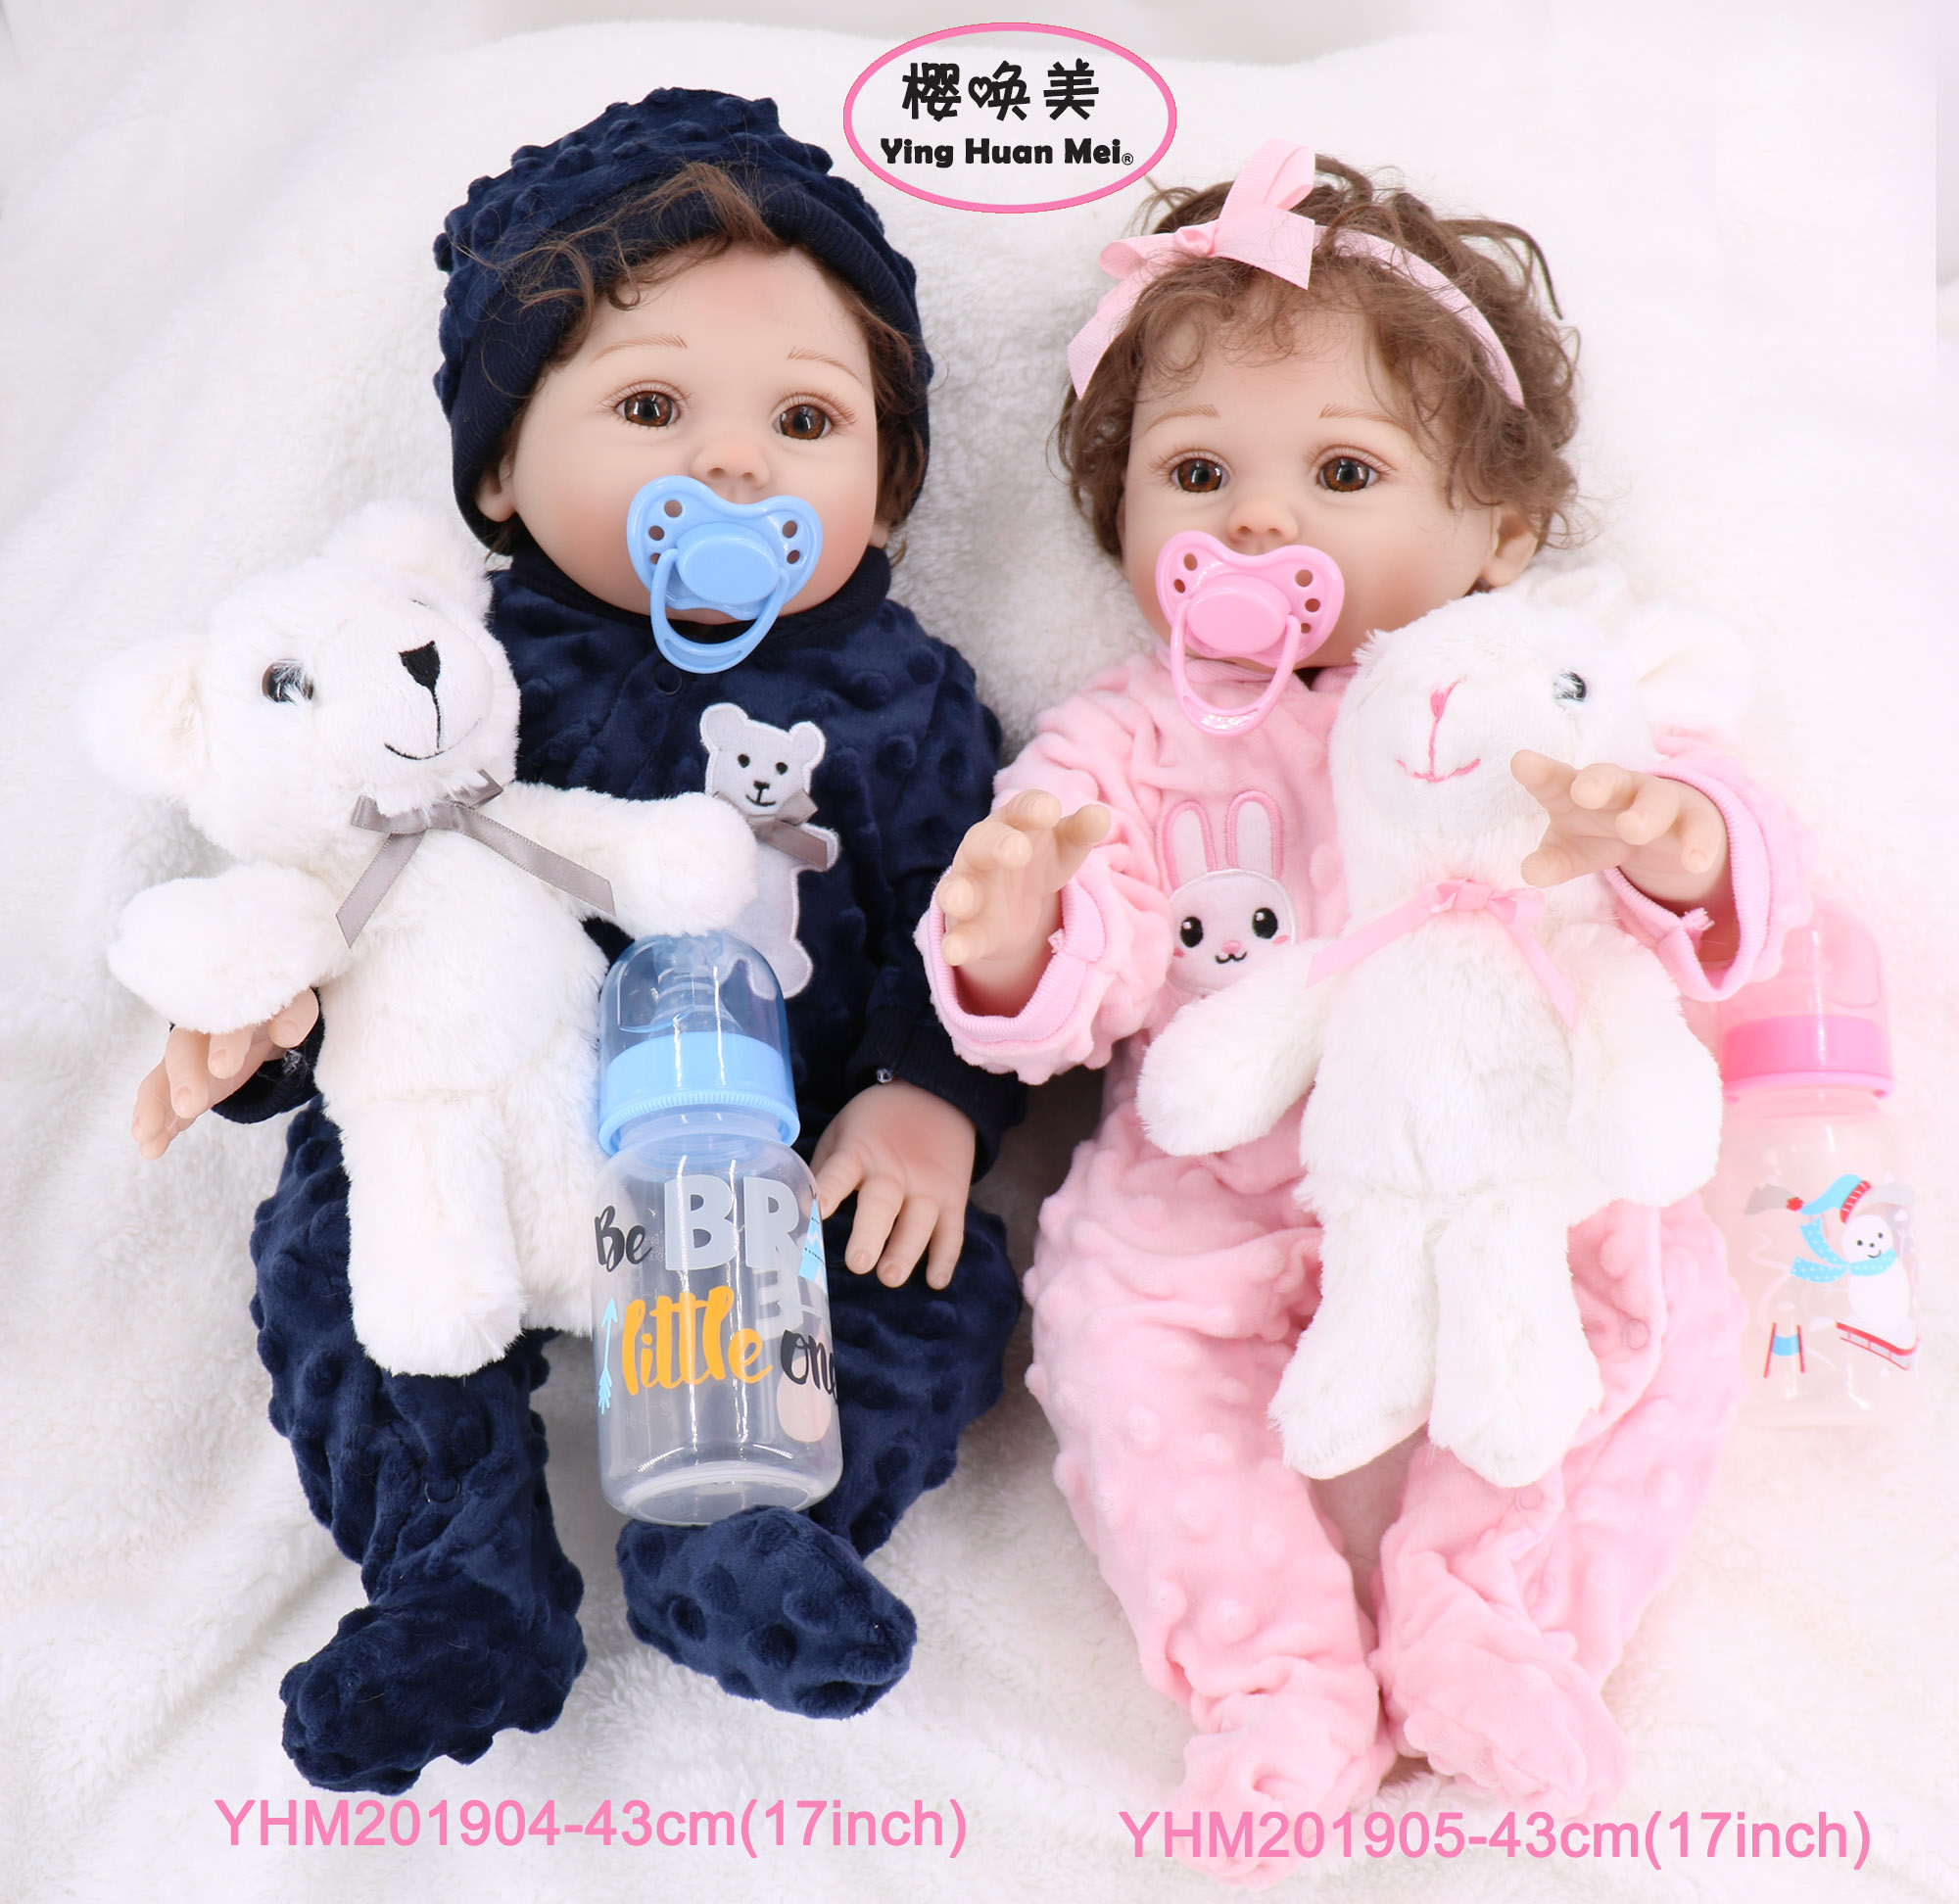 Child Reborn Full Silicone Reborn Full Silicone Body Baby Dolls Boy Girl Twin 43CM Vinyl Realistic Mini Moll Bath Toy Waterproof